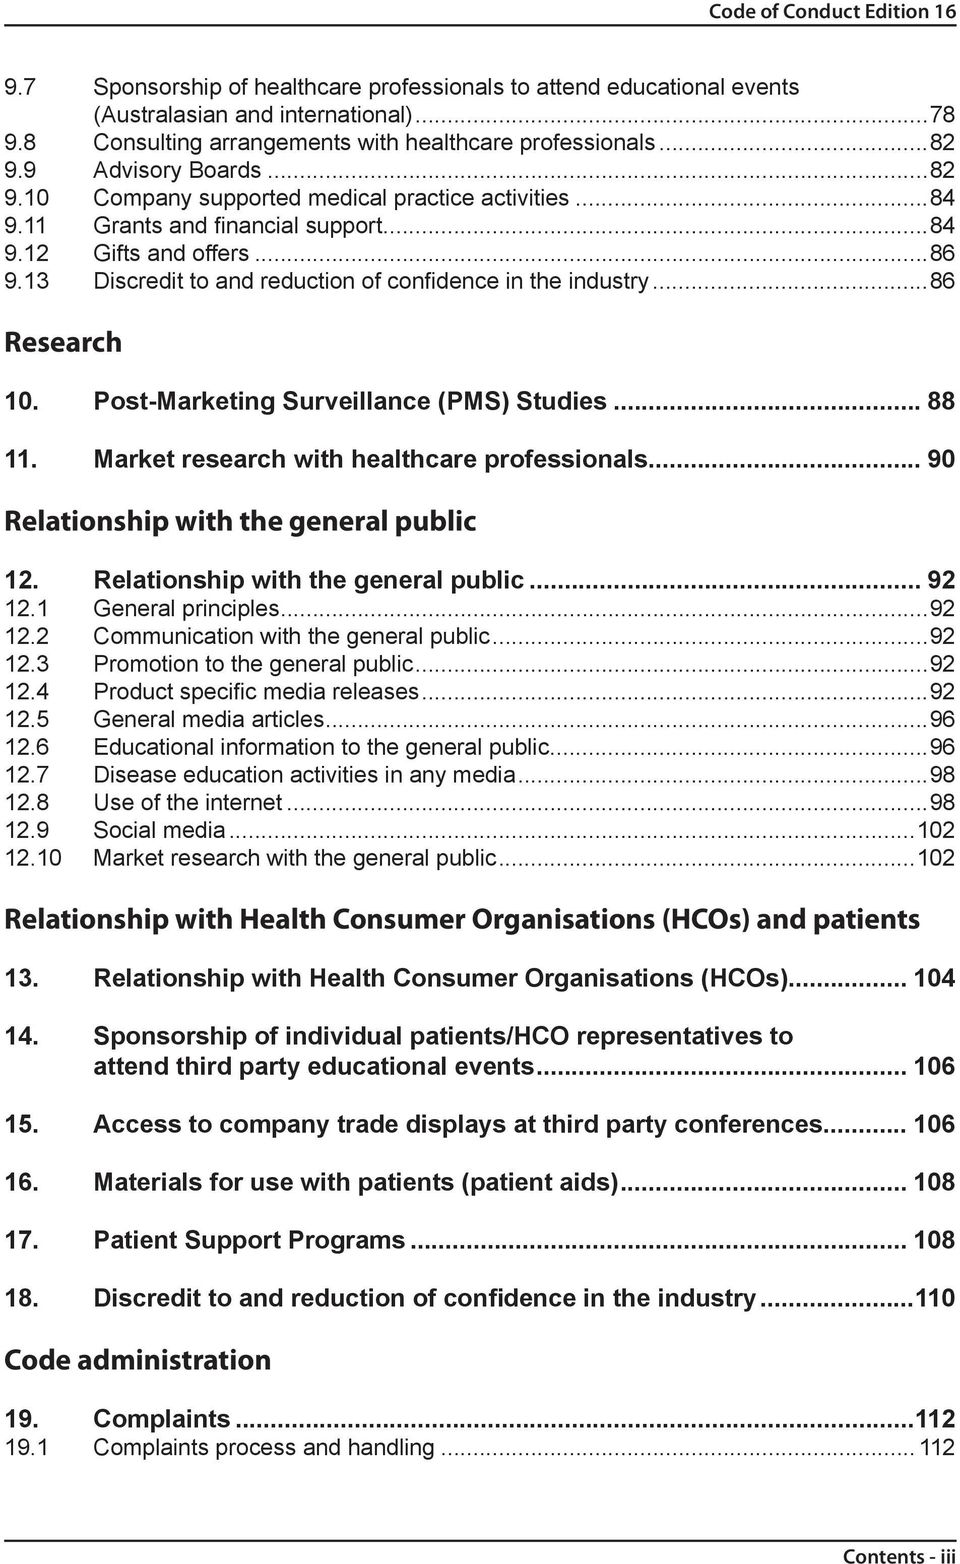 13 Discredit to and reduction of confidence in the industry...86 Research 10. Post-Marketing Surveillance (PMS) Studies... 88 11. Market research with healthcare professionals.